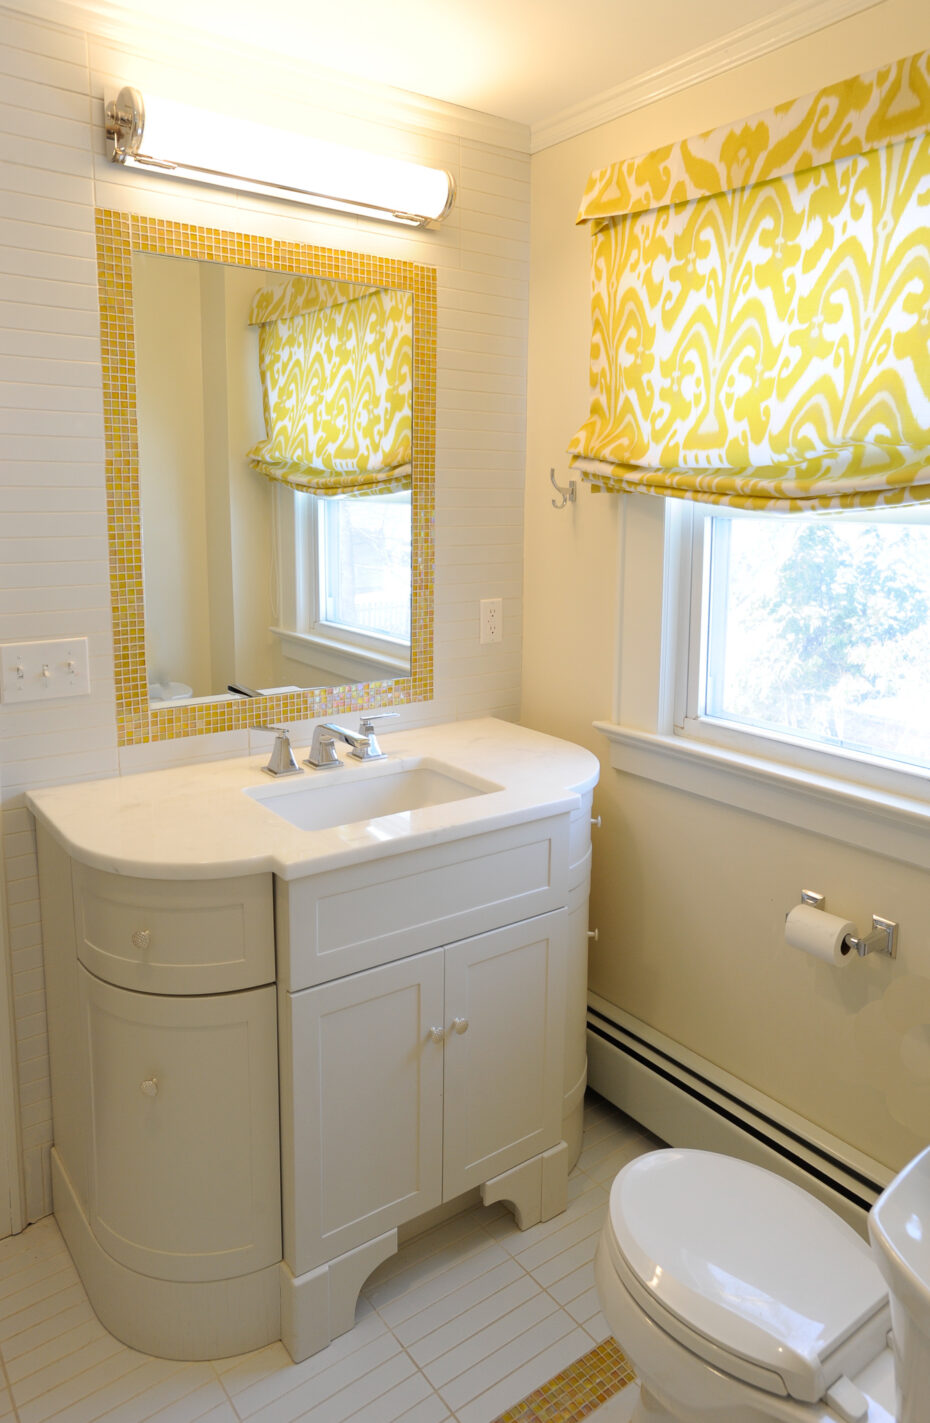 bathroom with white curved cabinet and yellow siccis glass tile